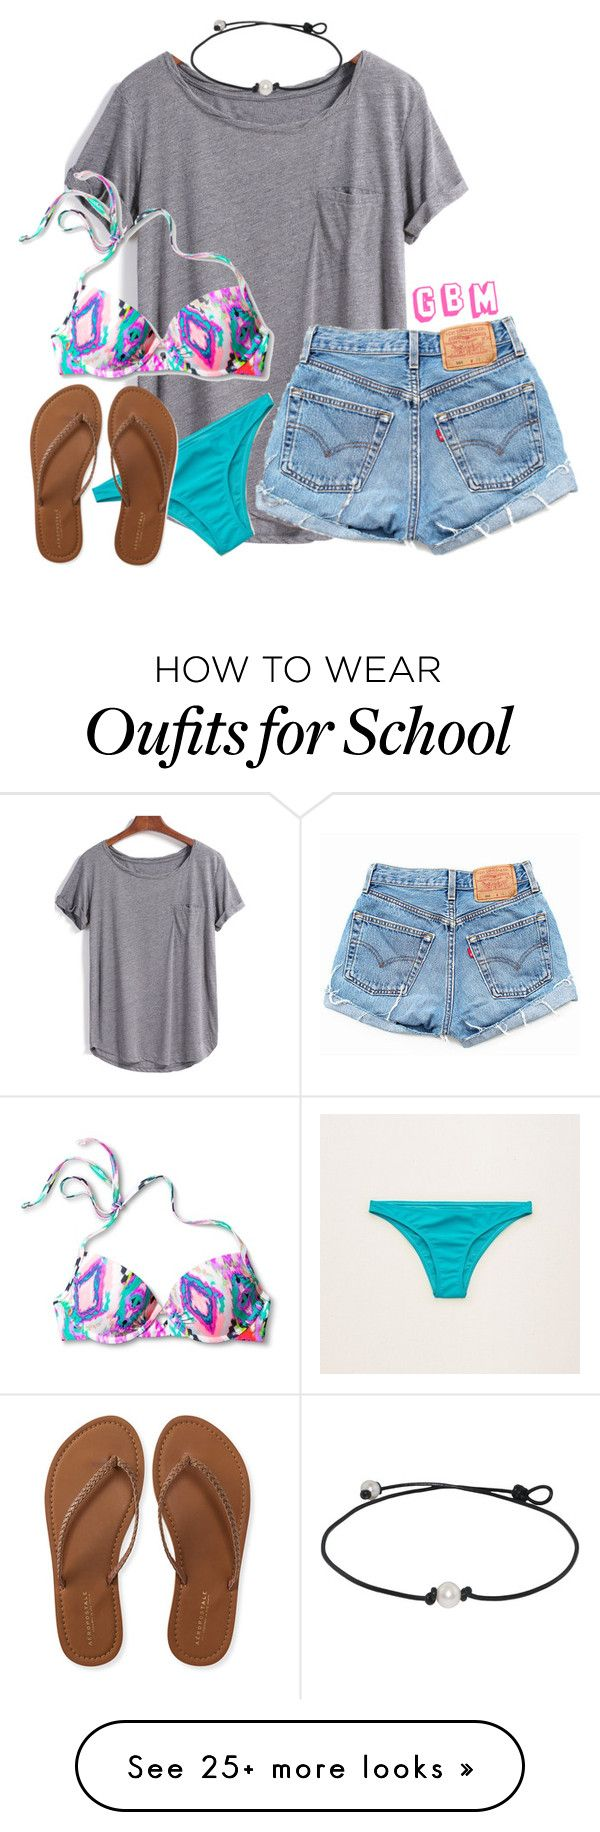 """Last day of school tomorrow"" by preppy-horsegirl on Polyvore featuring Xhilaration, Aerie, Aéropostale and Levi's"